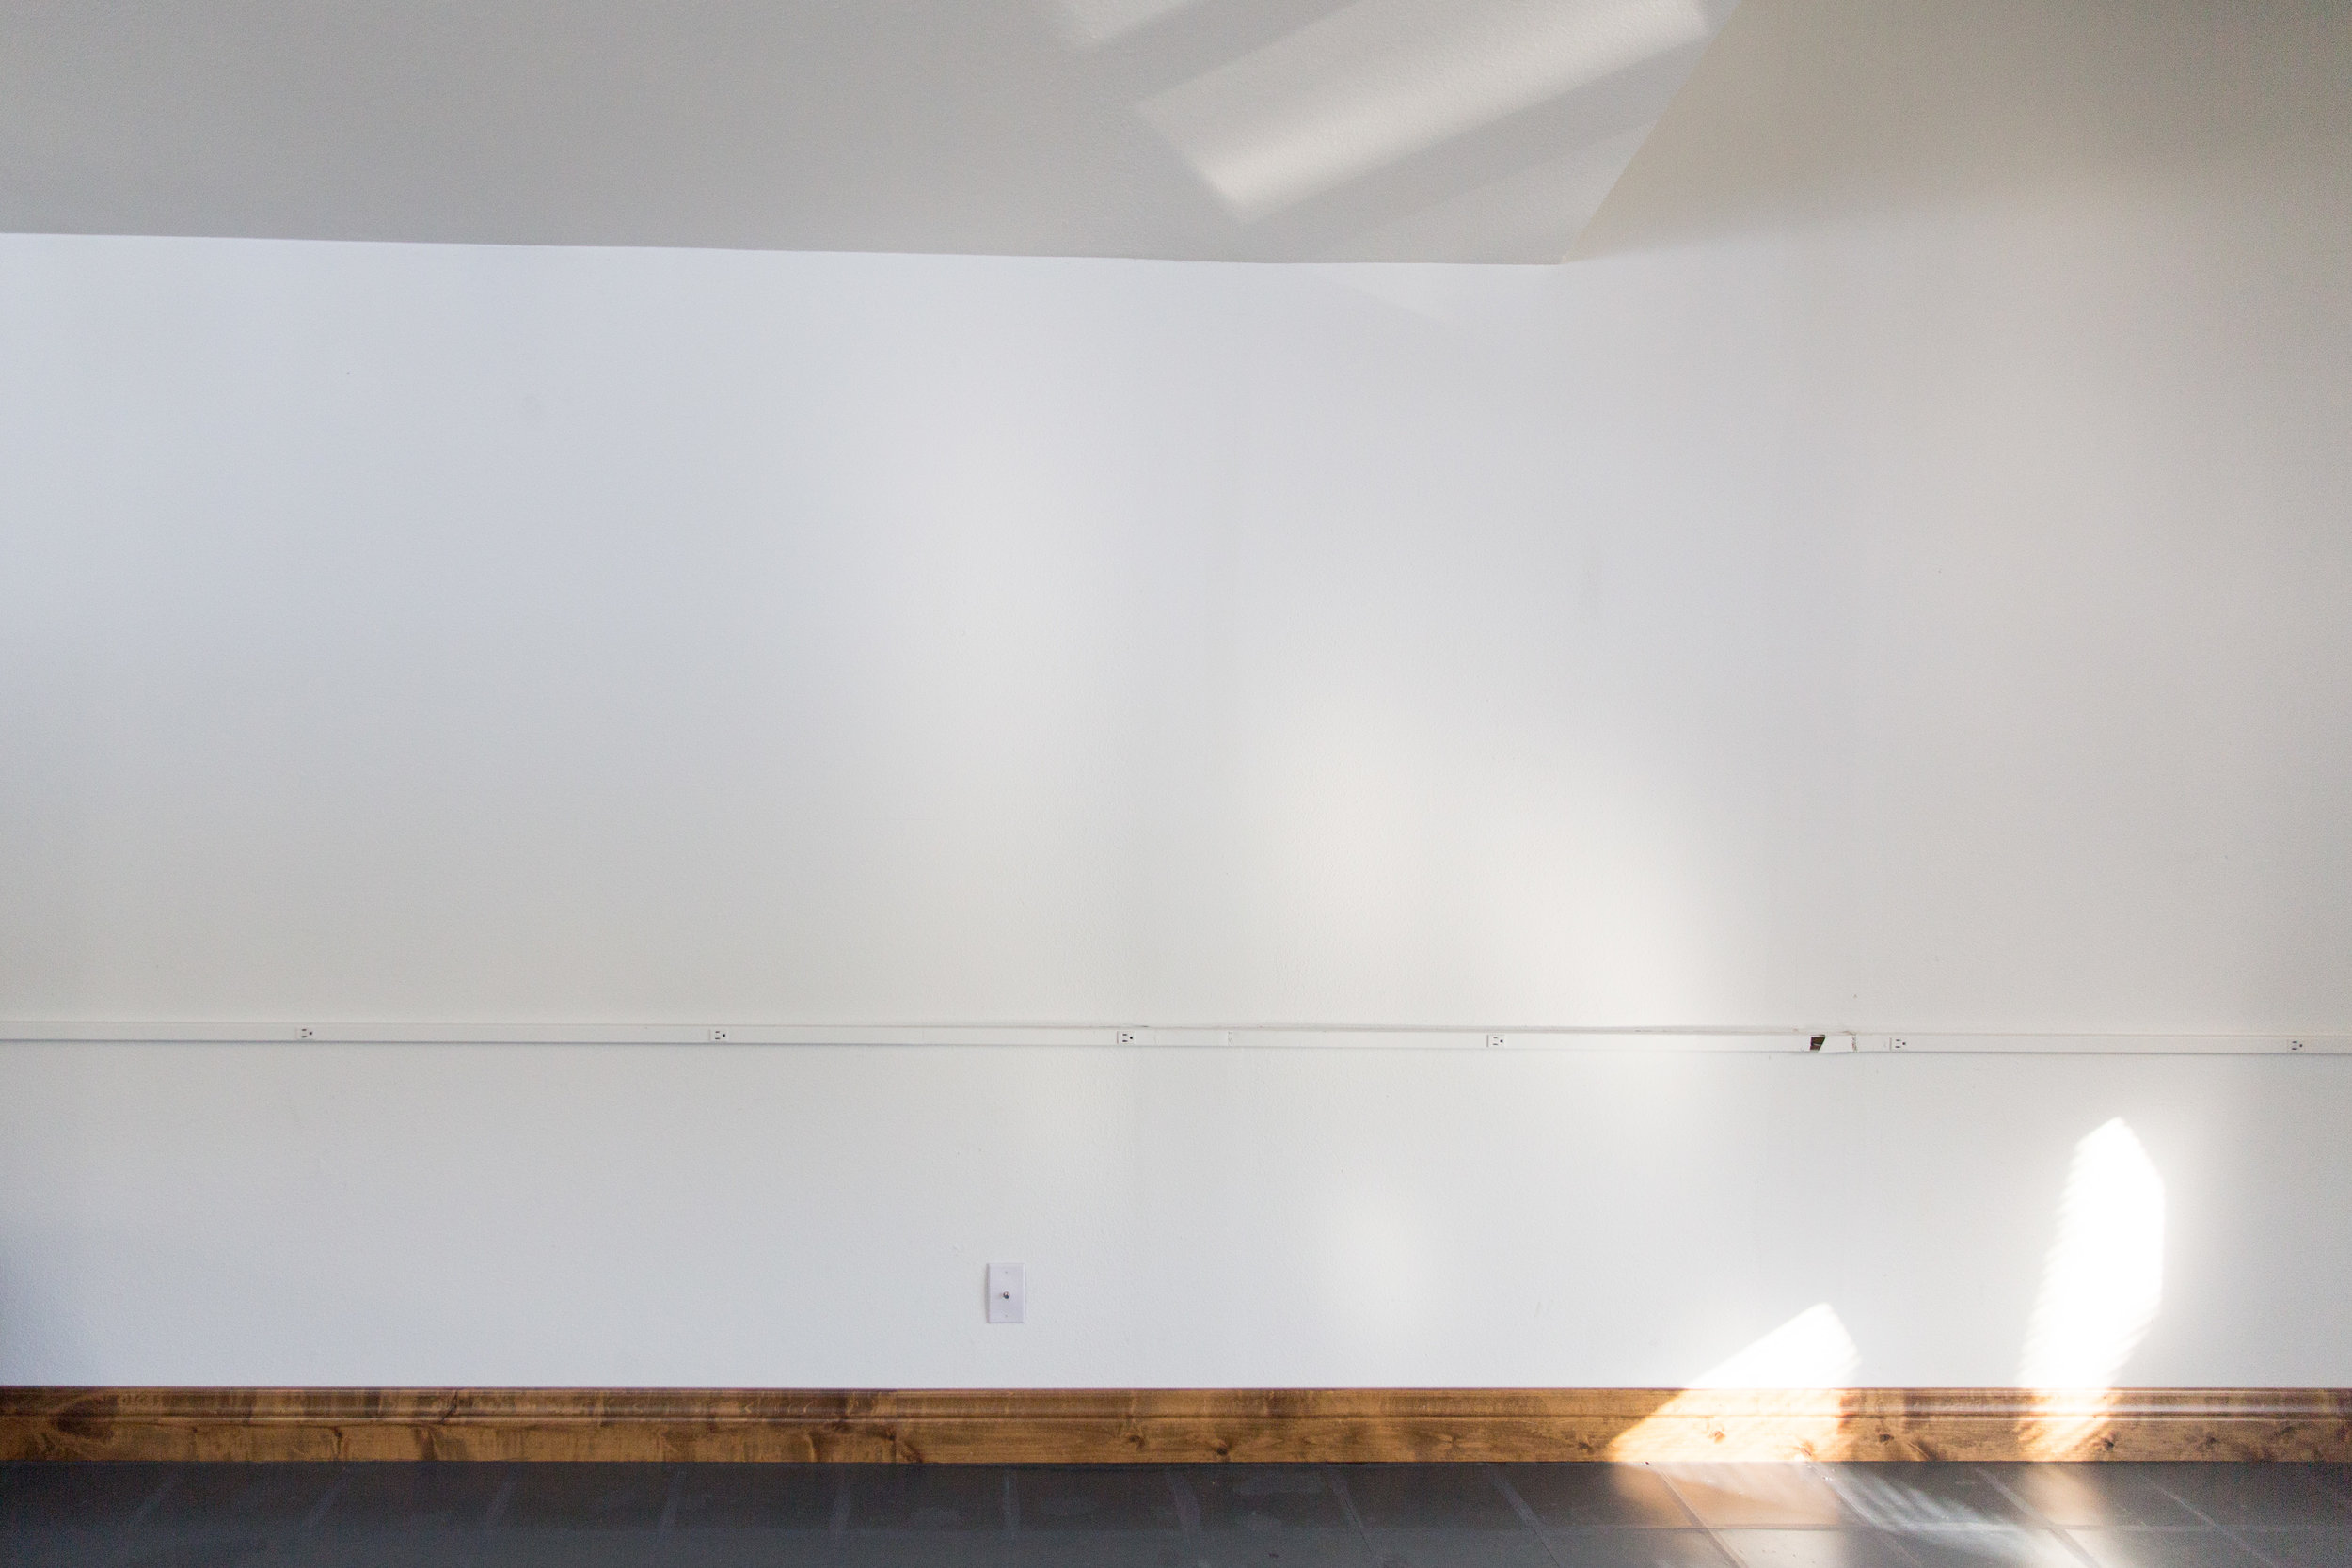 studio-before-and-after-fortitude-and-finn-3.jpg